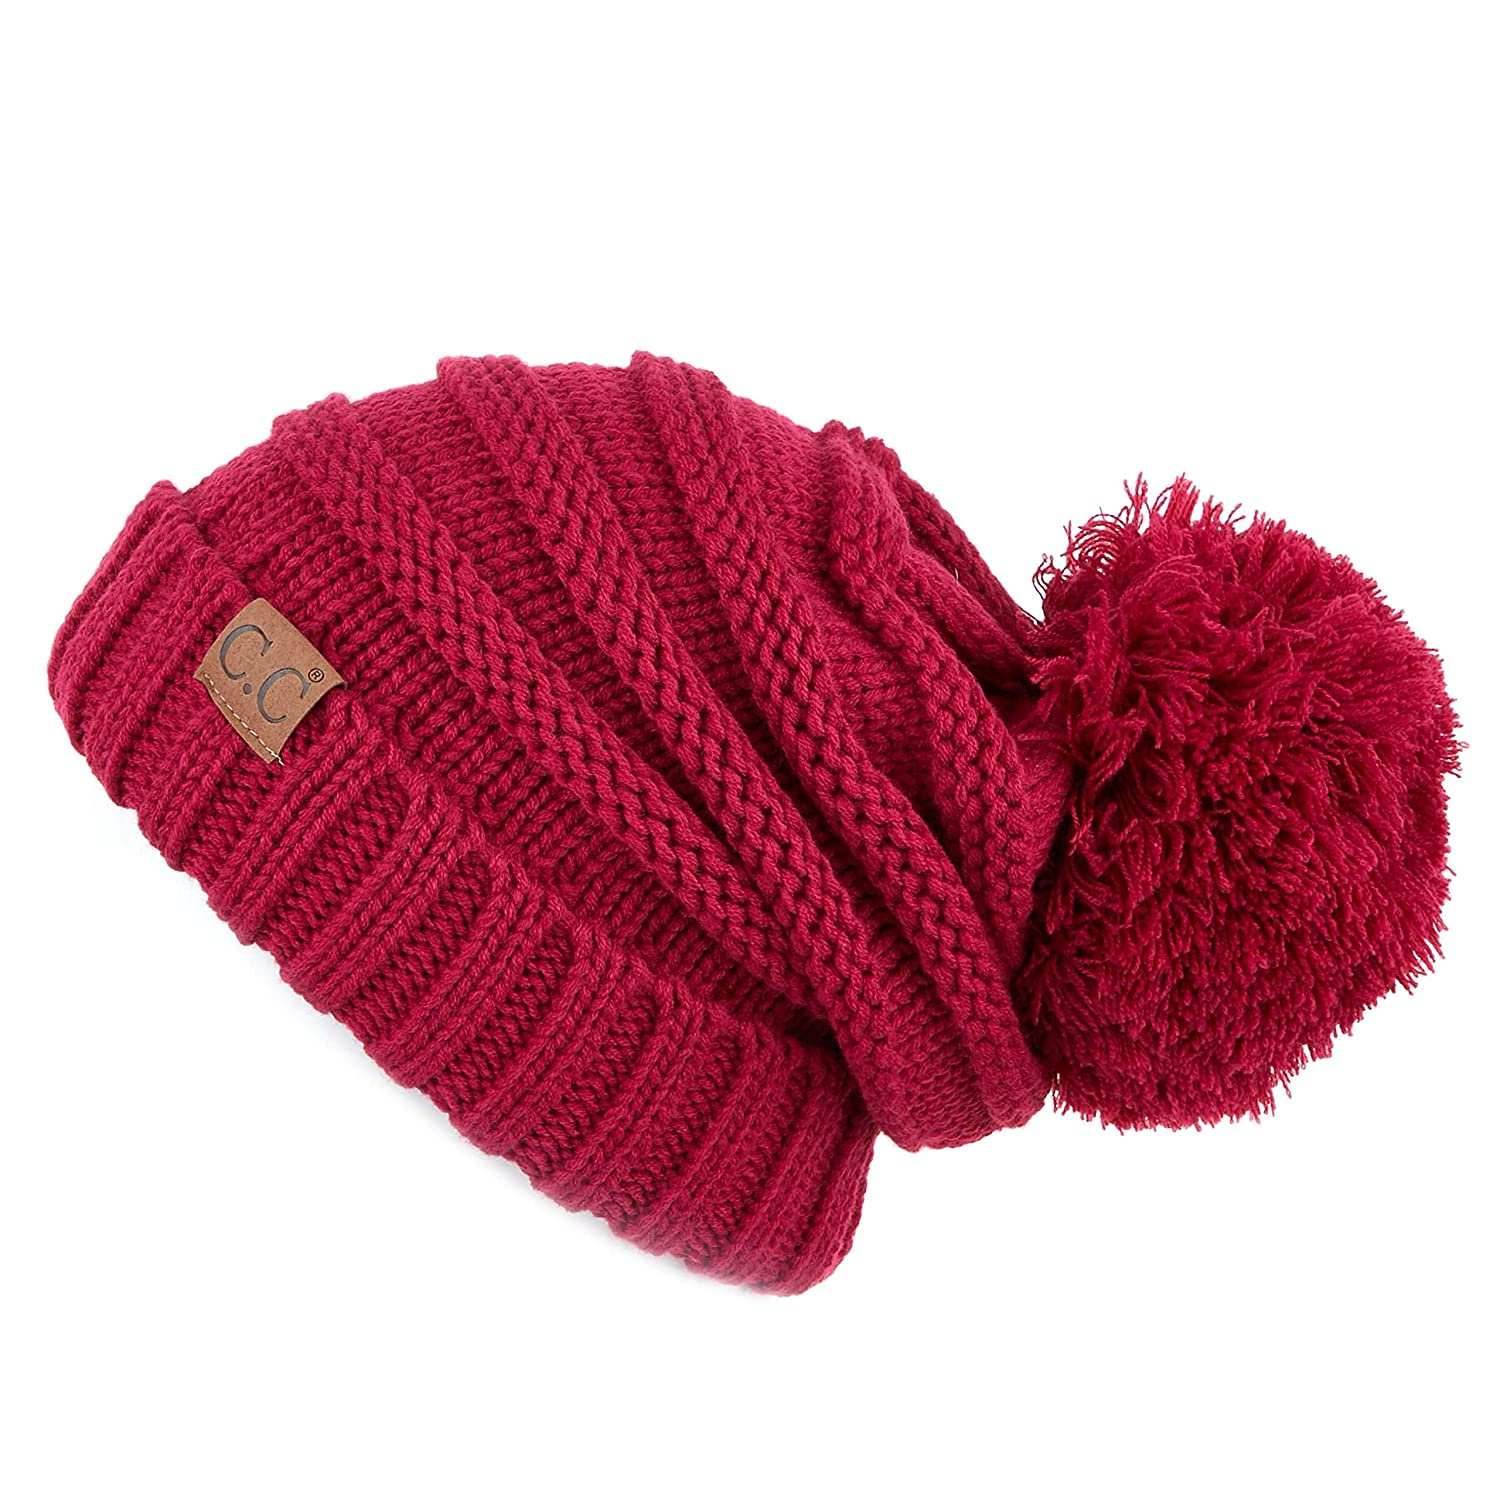 48b73bc248a CC Exclusives Unisex Oversized Slouchy Beanie with Pom (HAT-100POM) (Hot  Pink) at Amazon Women's Clothing store: